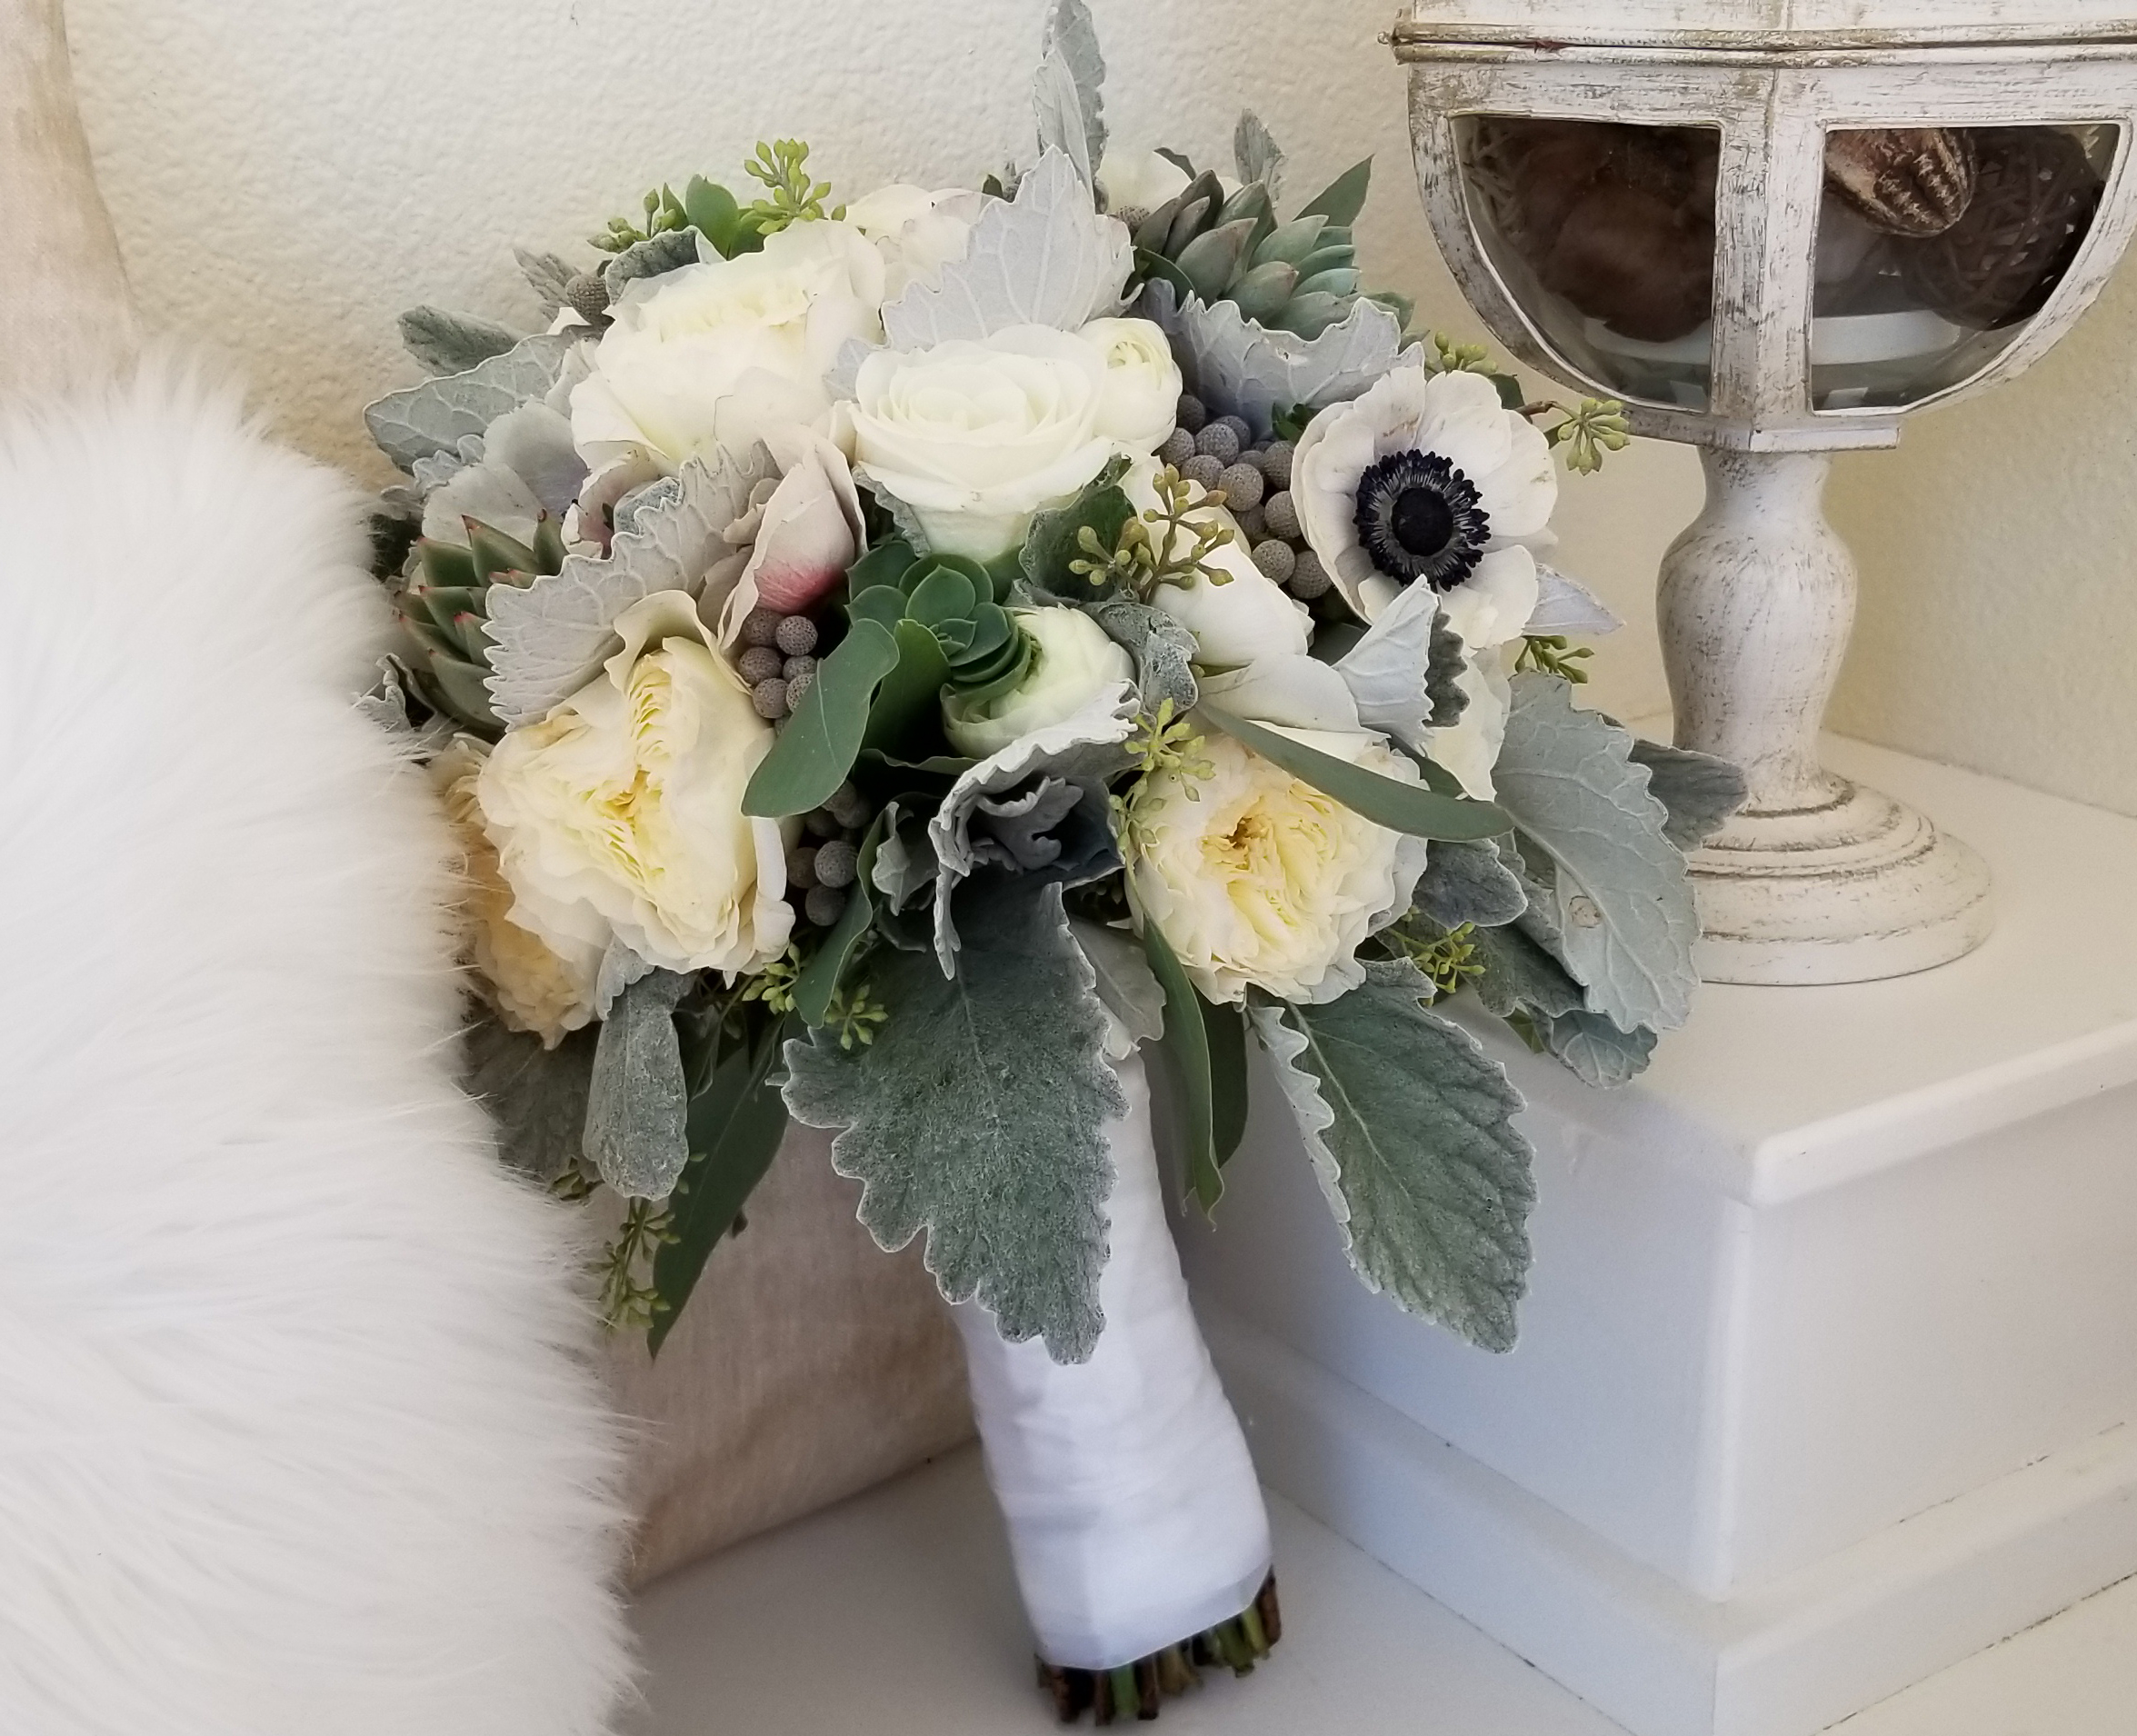 Romantic white and gray bridal bouquet, flowers include anemone, garden roses, succulents, ranunculus, brunia balls and dusty miller.